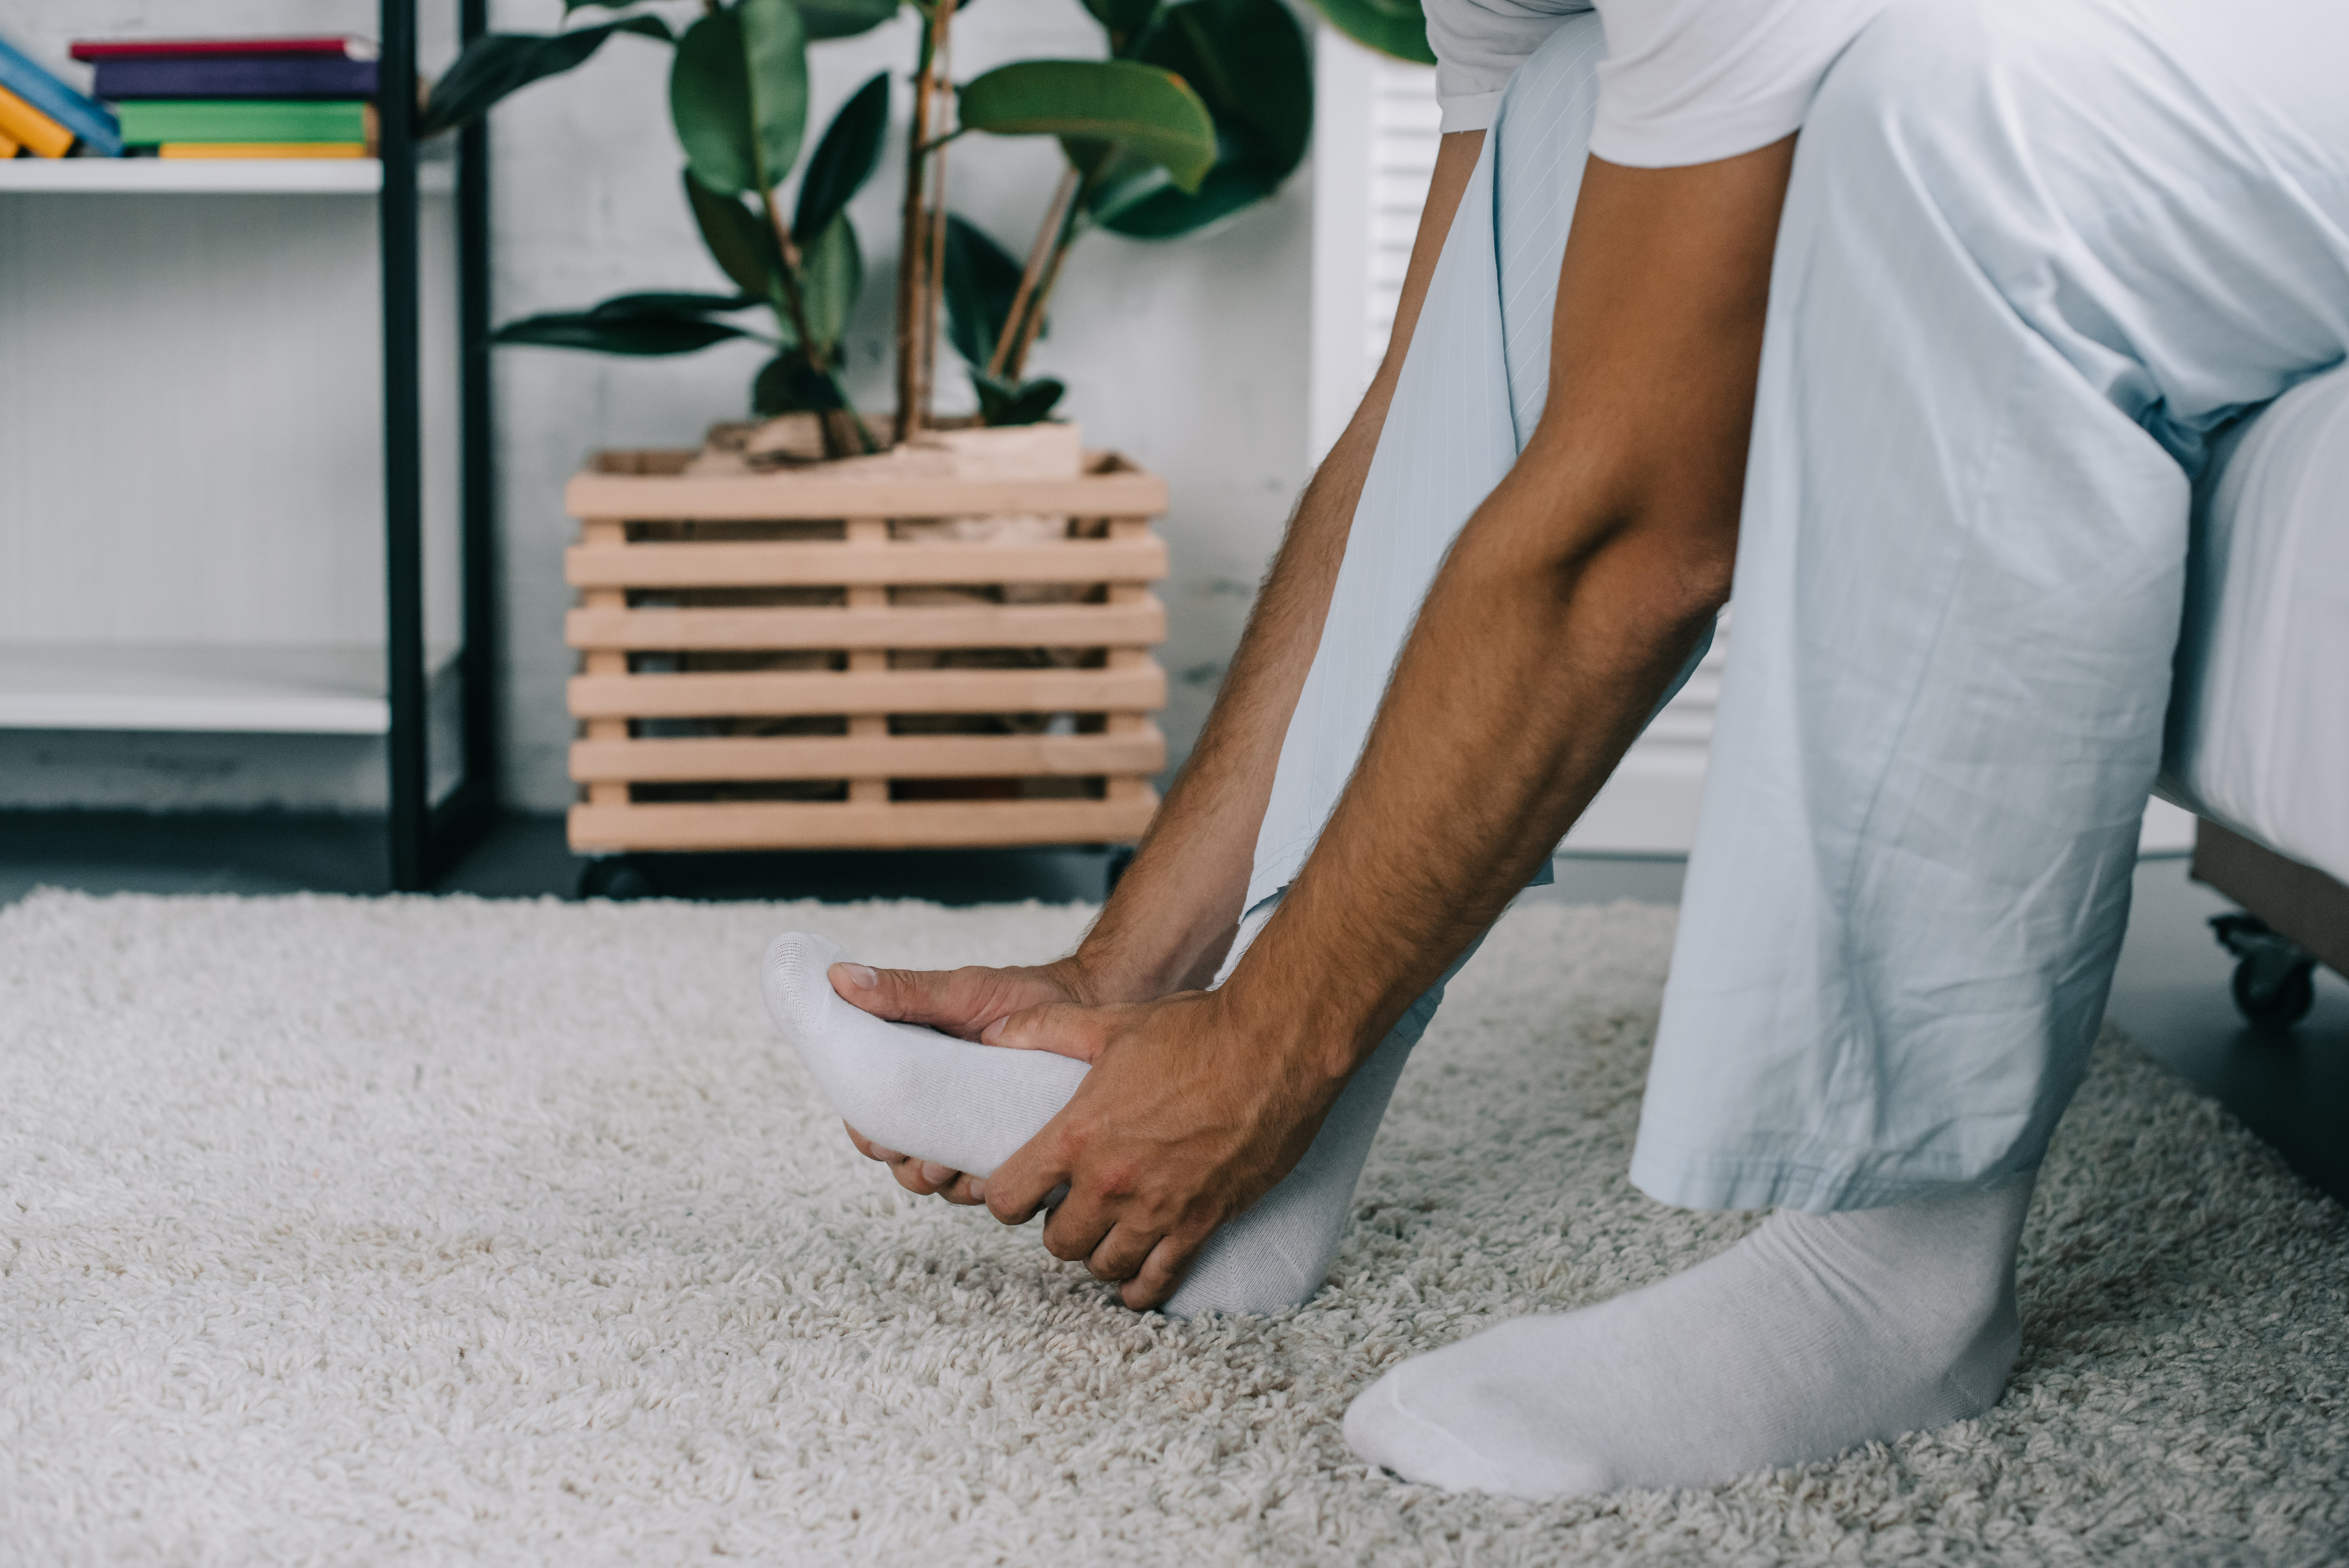 Curious About Diabetic Neuropathy?